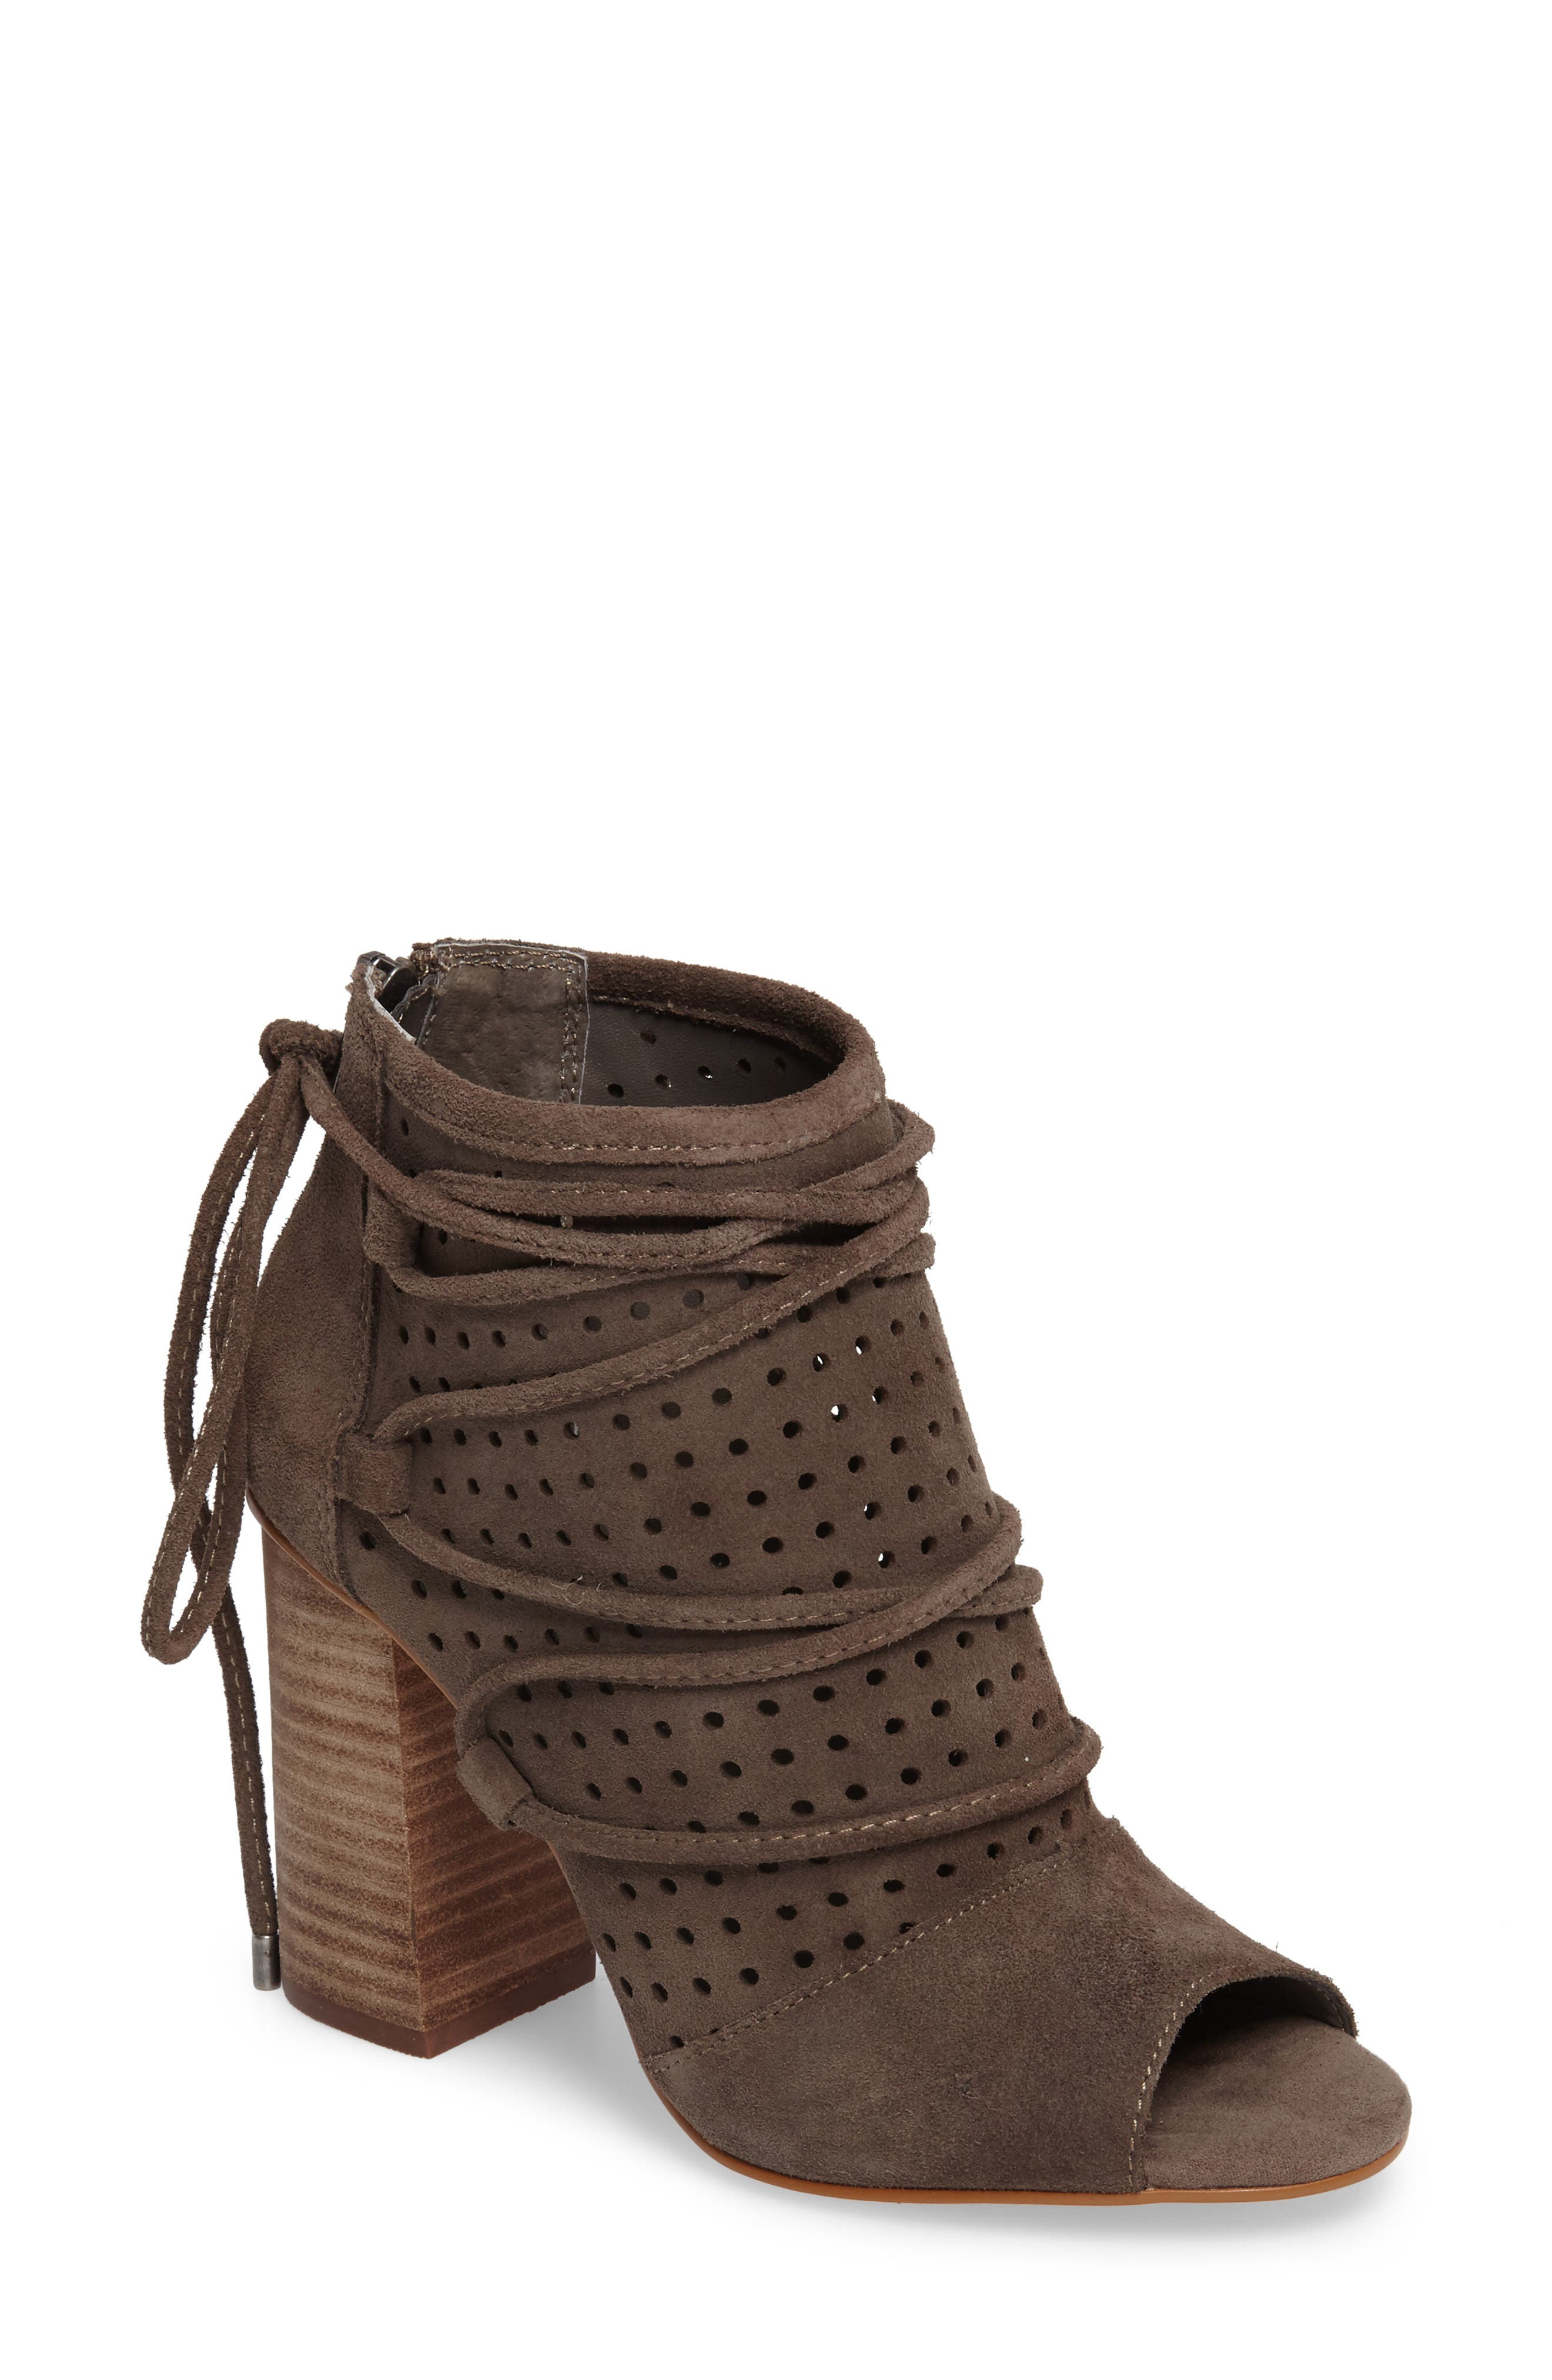 Alternate Image 1 Selected - Very Volatile Kalio Perforated Open Toe Bootie (Women)